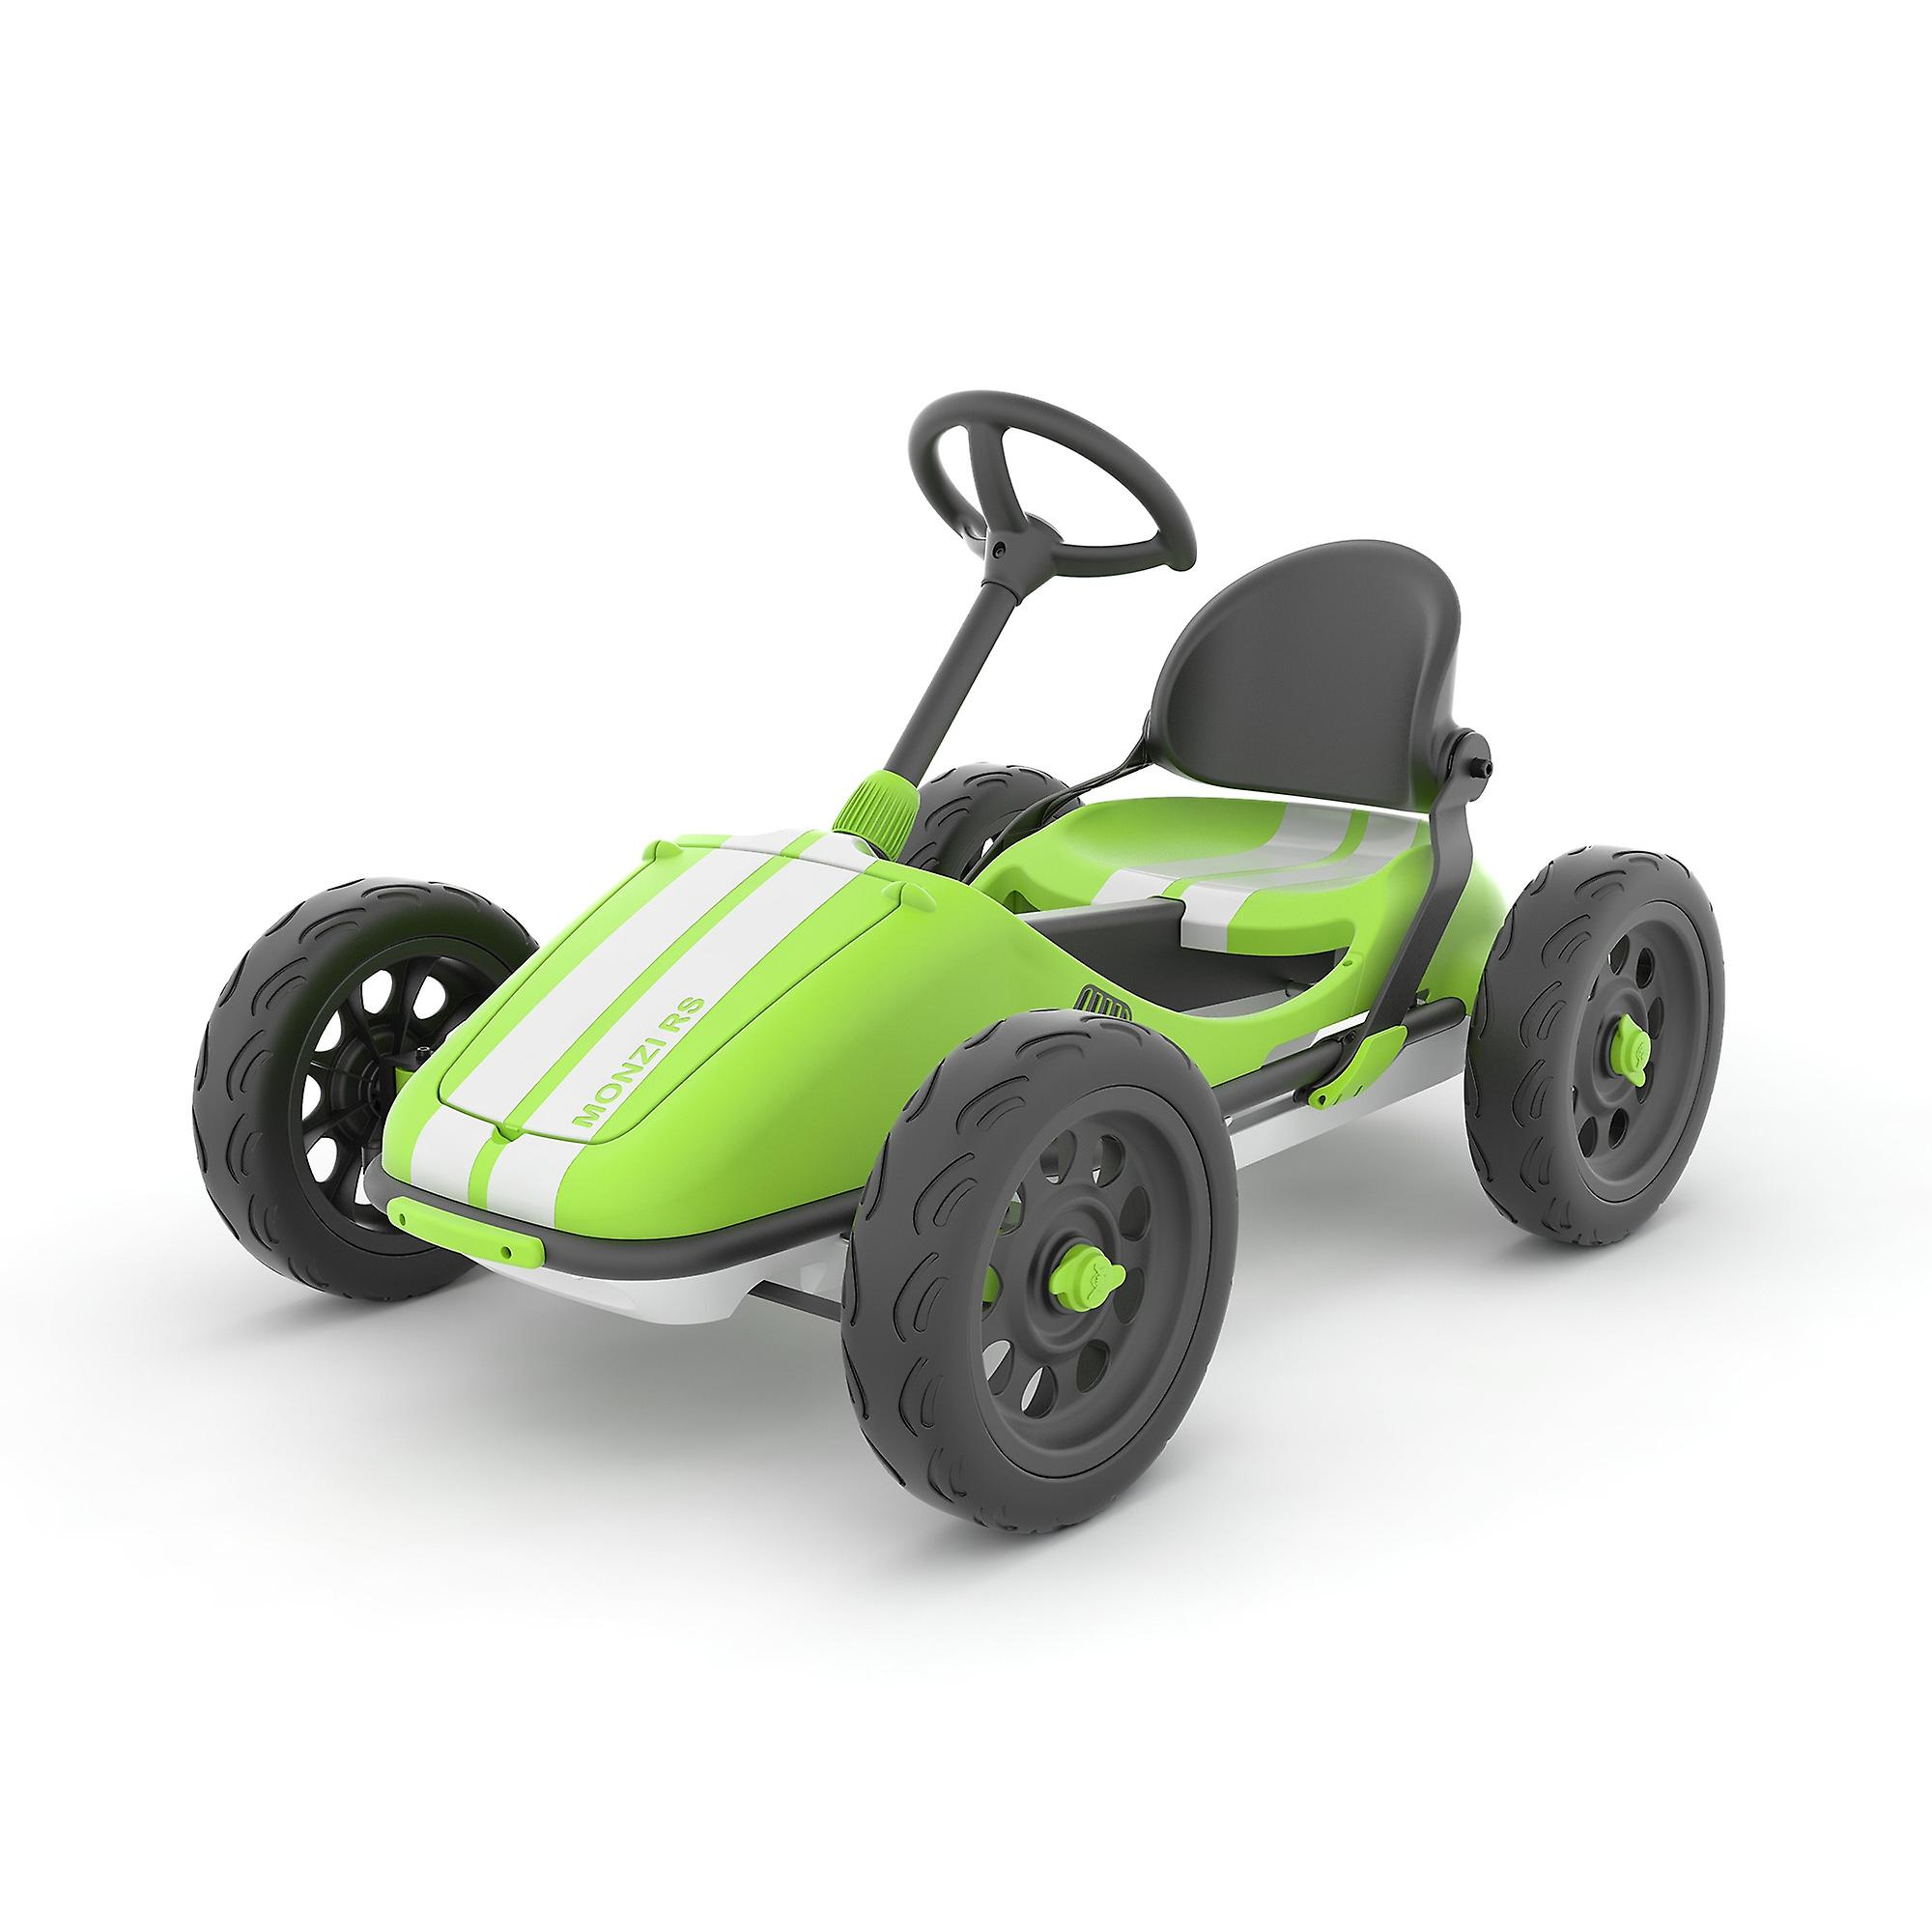 Chillafish Monzi Rs Foldable Pedal Go Kart Lime Ages 3 7 Years